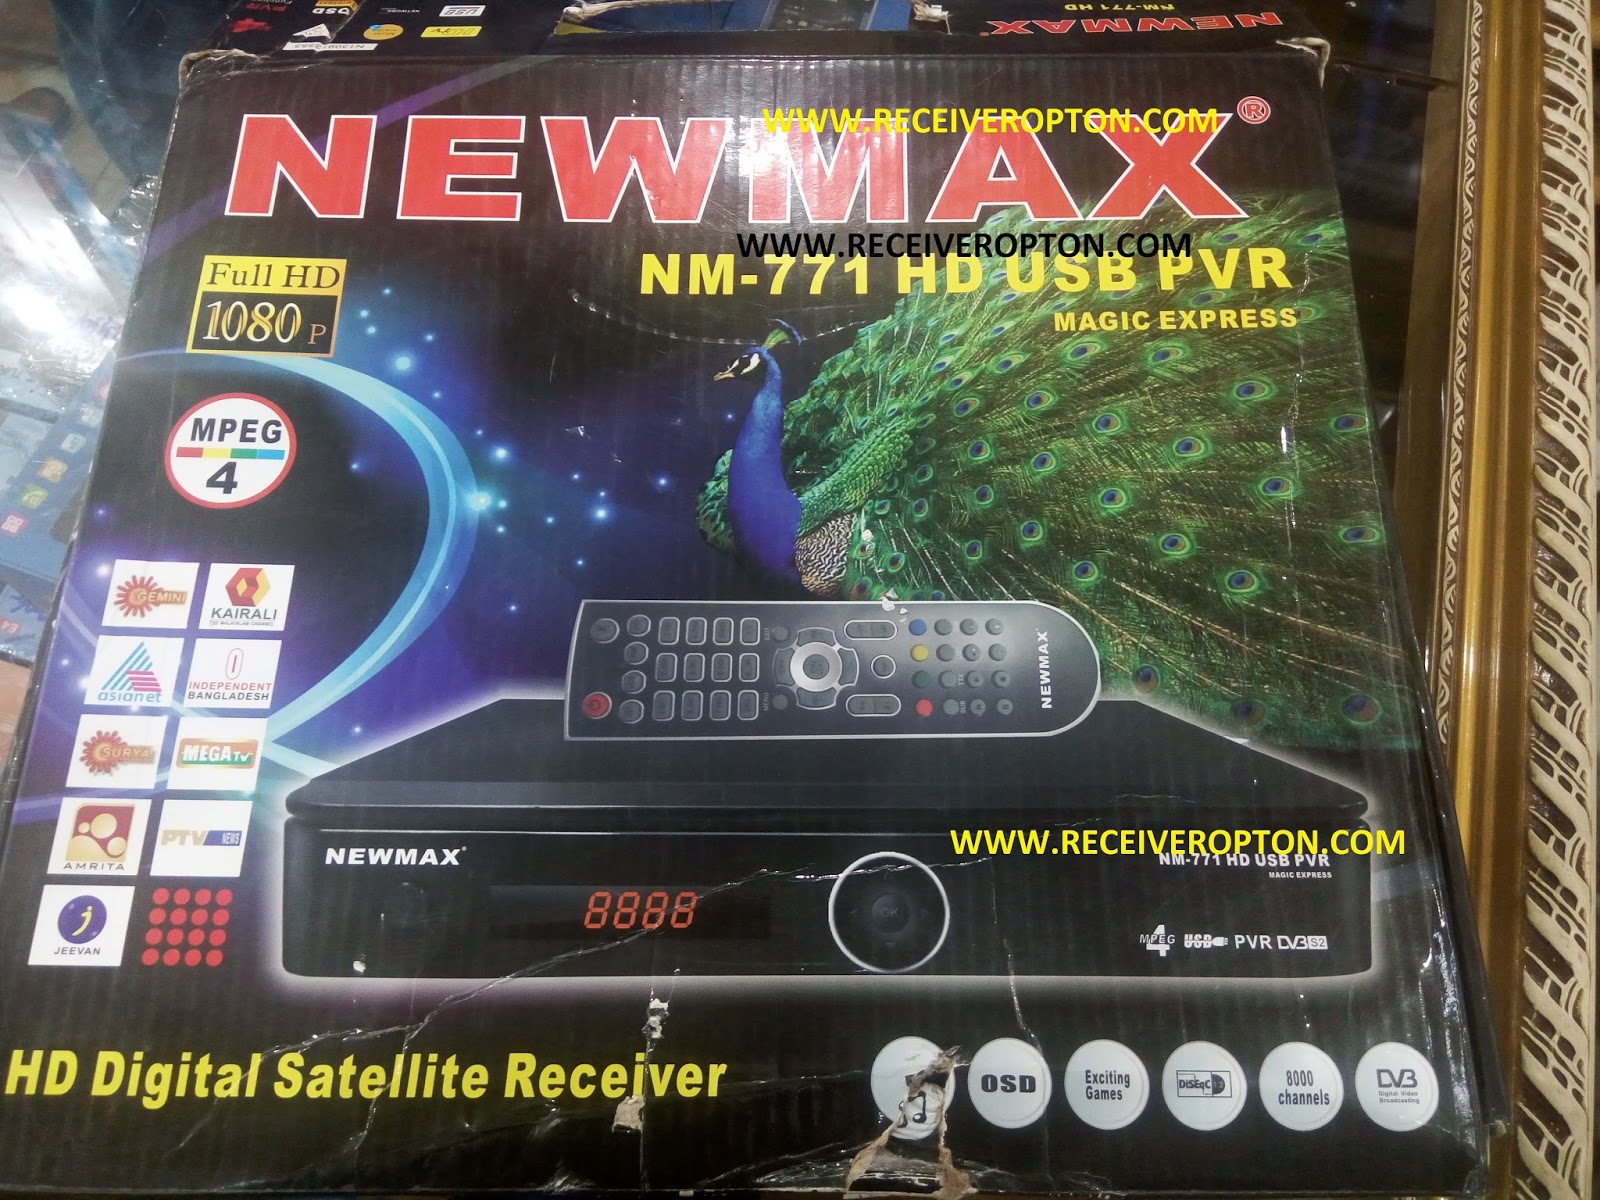 NEWMAX NM-771 HD USB PVR RECEIVER BISS KEY OPTION - HOW TO